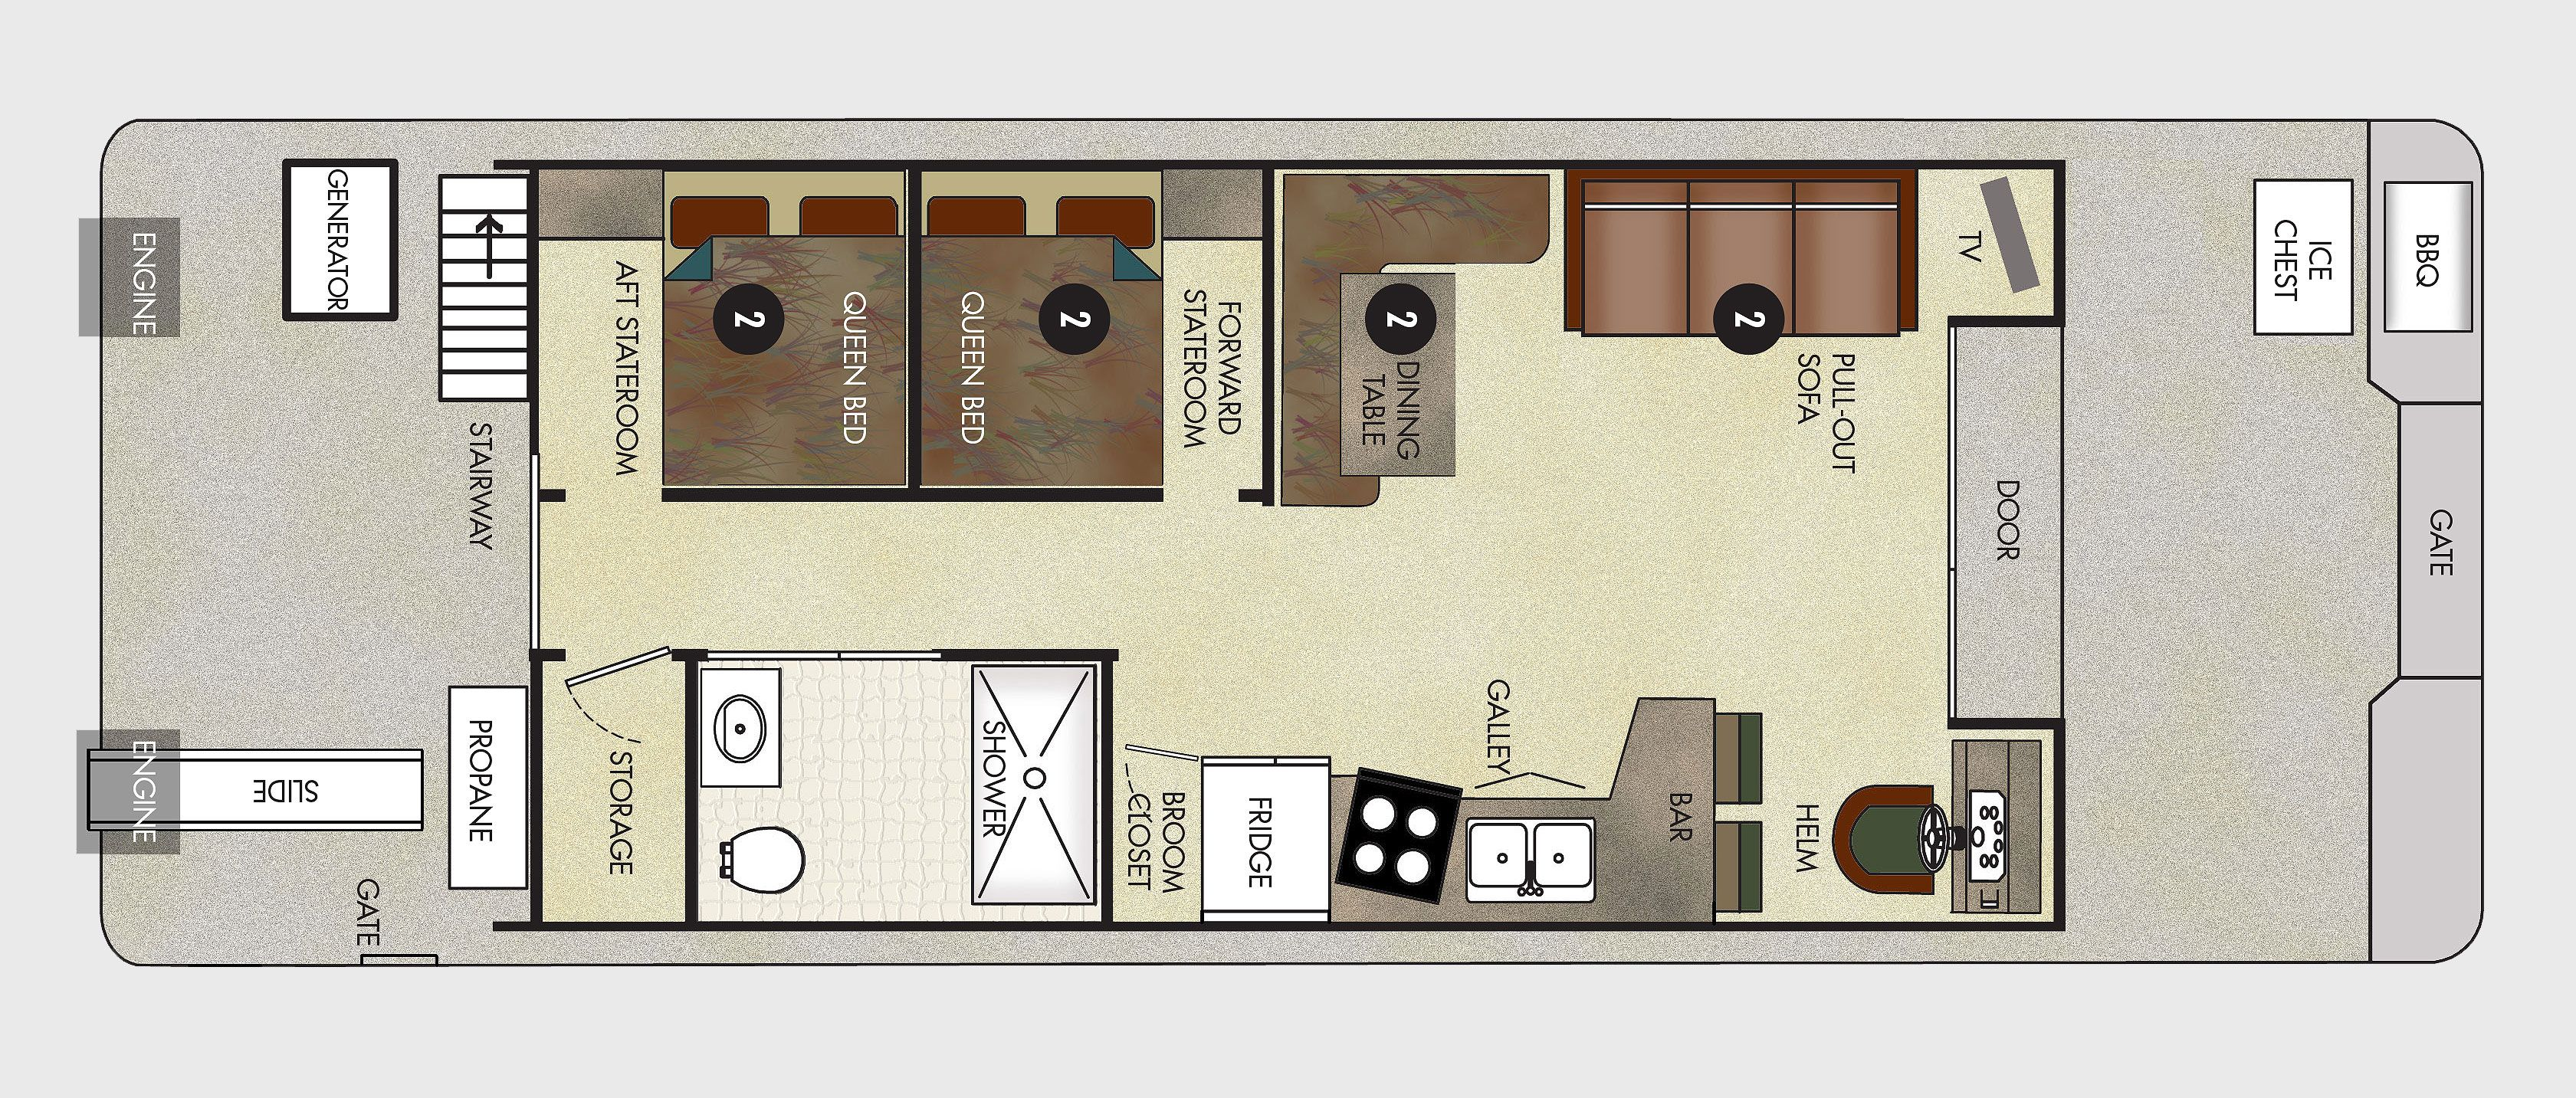 Houseboat Floor Plans 8X25 46 Voyager XL Class Houseboat – Houseboat Floor Plans